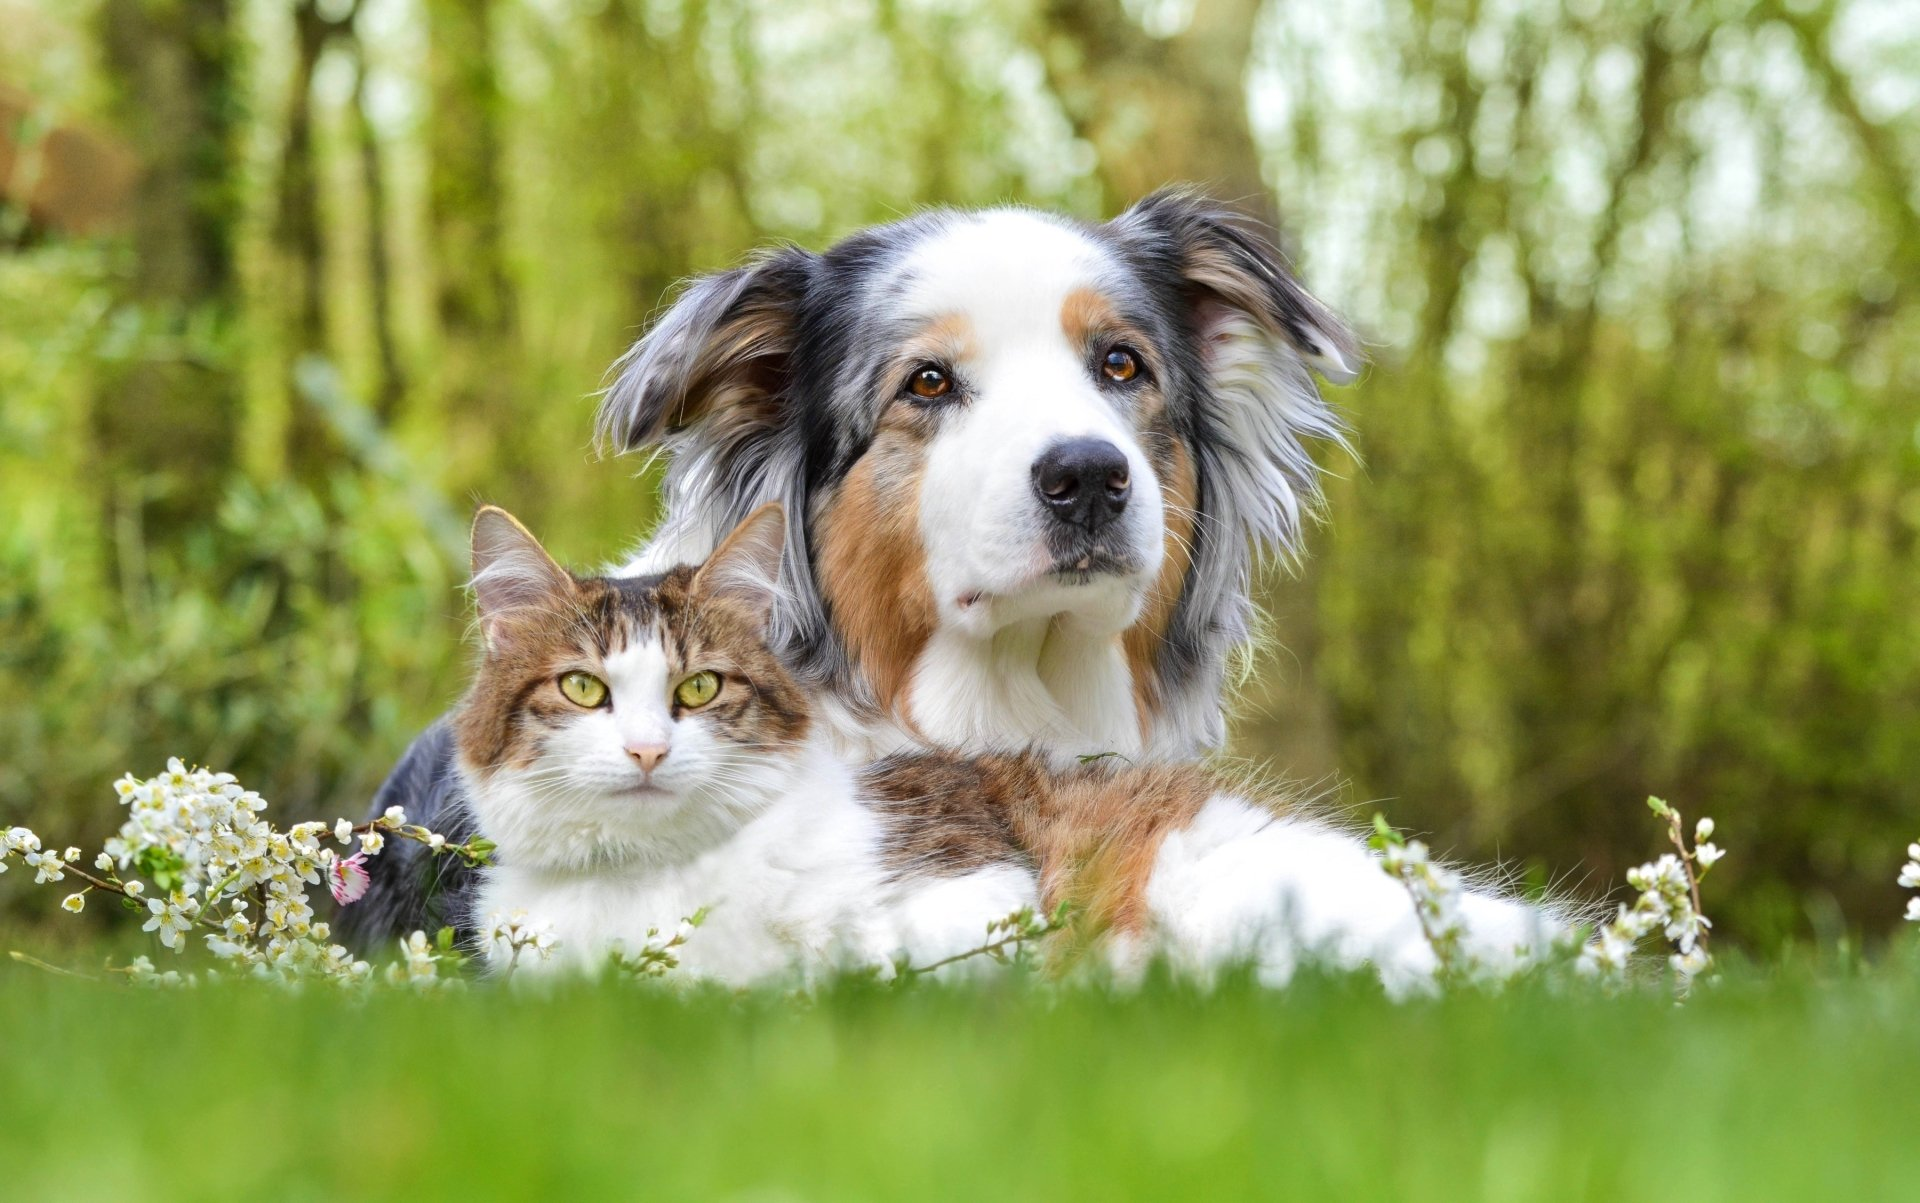 Animal - Cat & Dog  Animal Dog Cat Cute Australian Shepherd Wallpaper